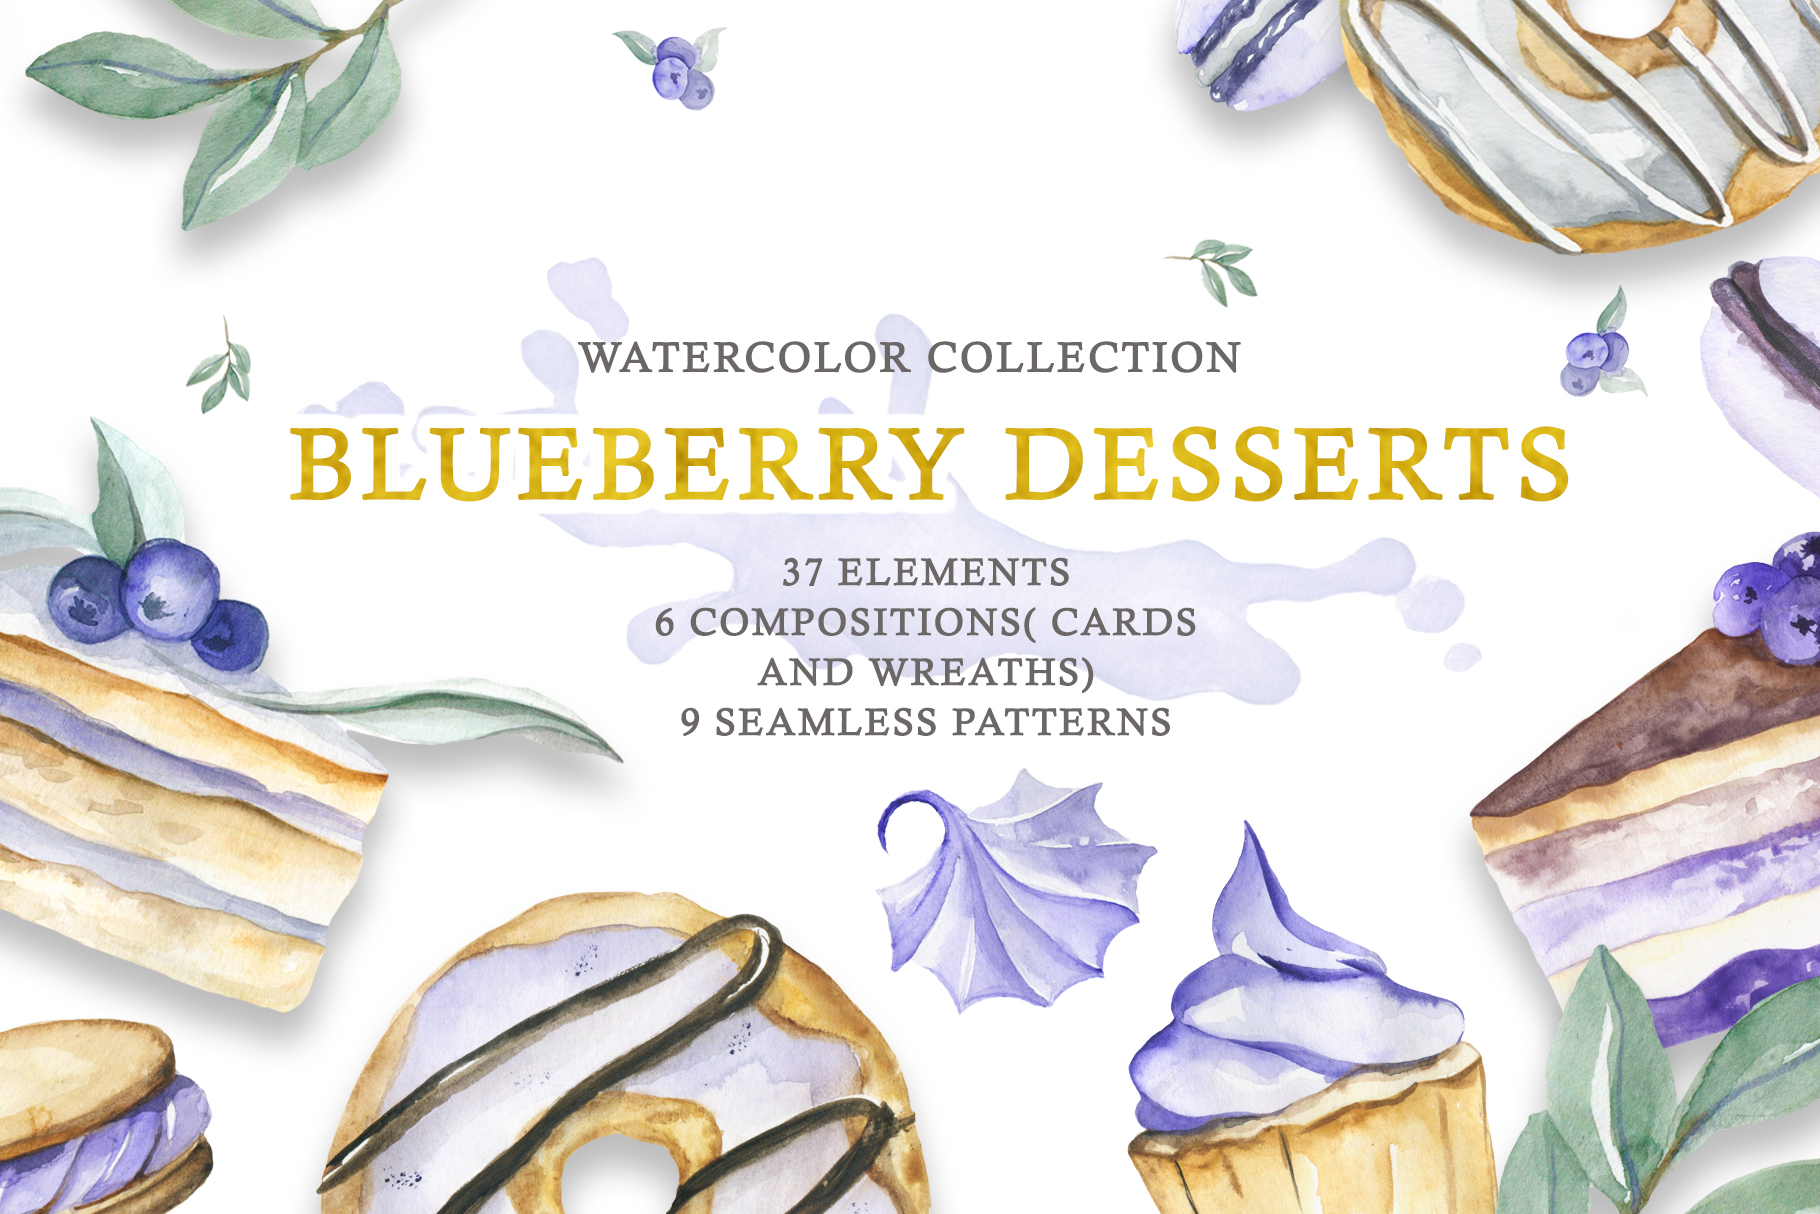 Watercolor collection of Blueberry Desserts example image 1